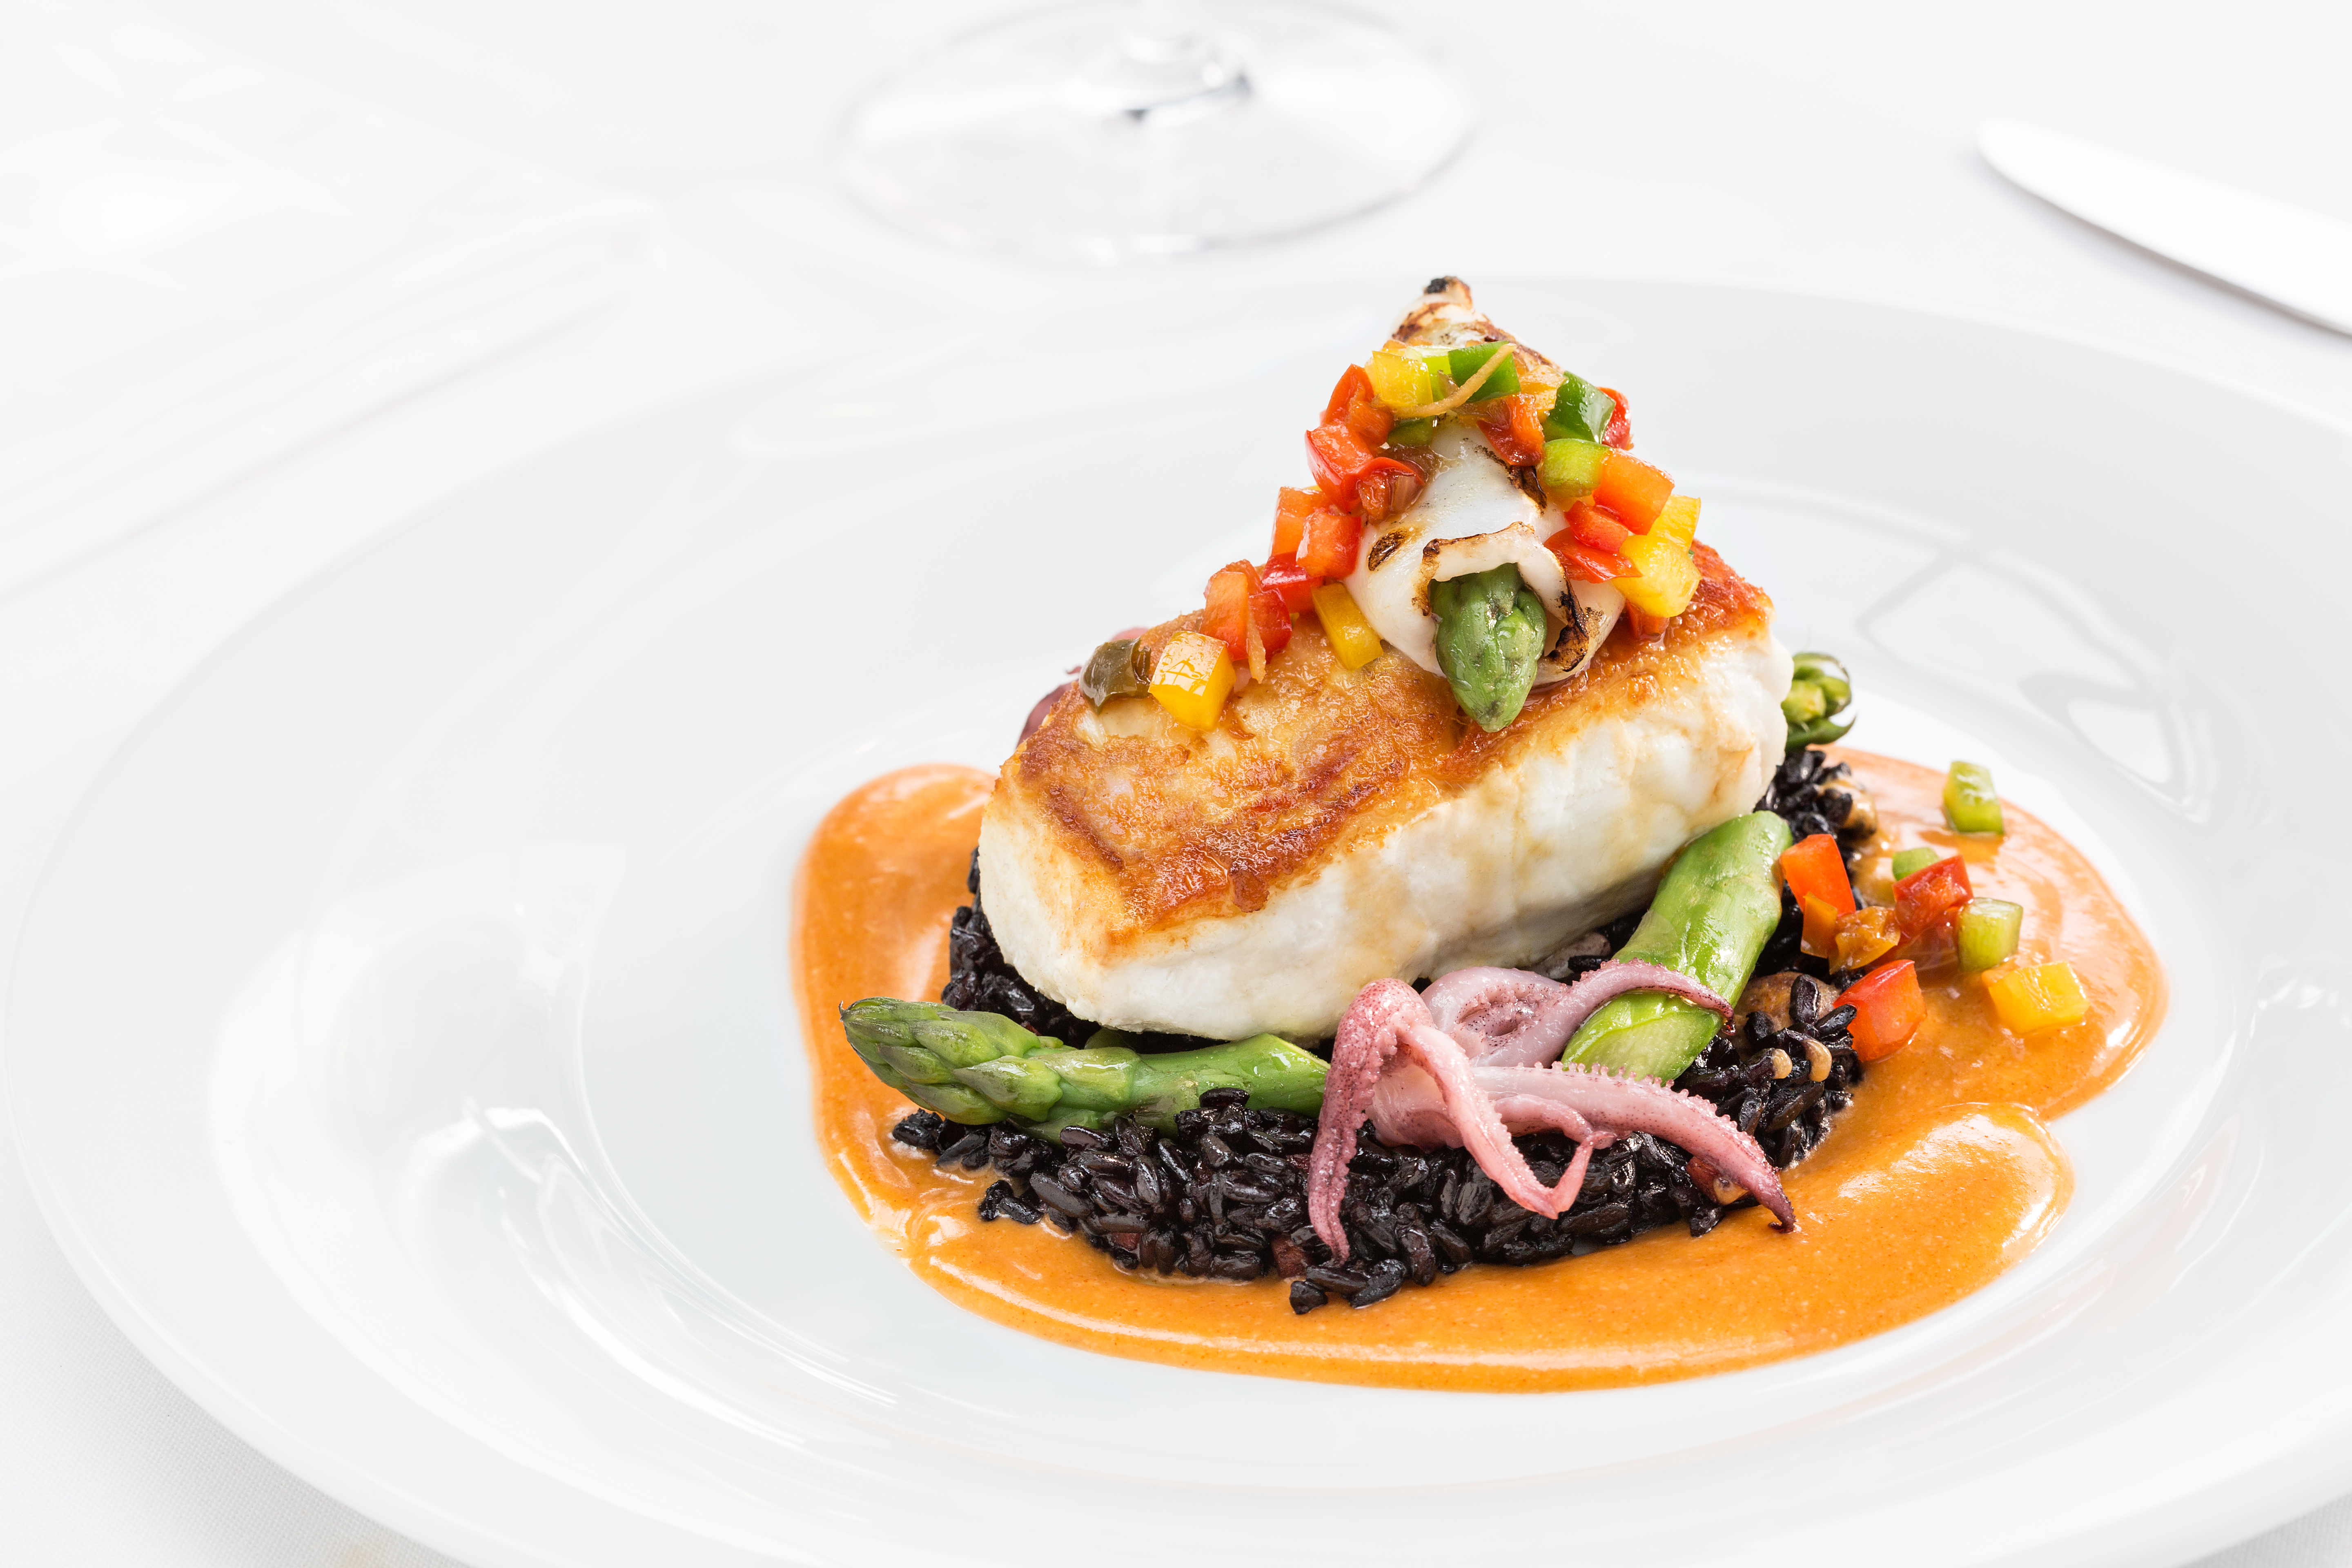 Japanese and Peruvian cuisine come together in Vancouver's ... Alaskan Halibut Dish